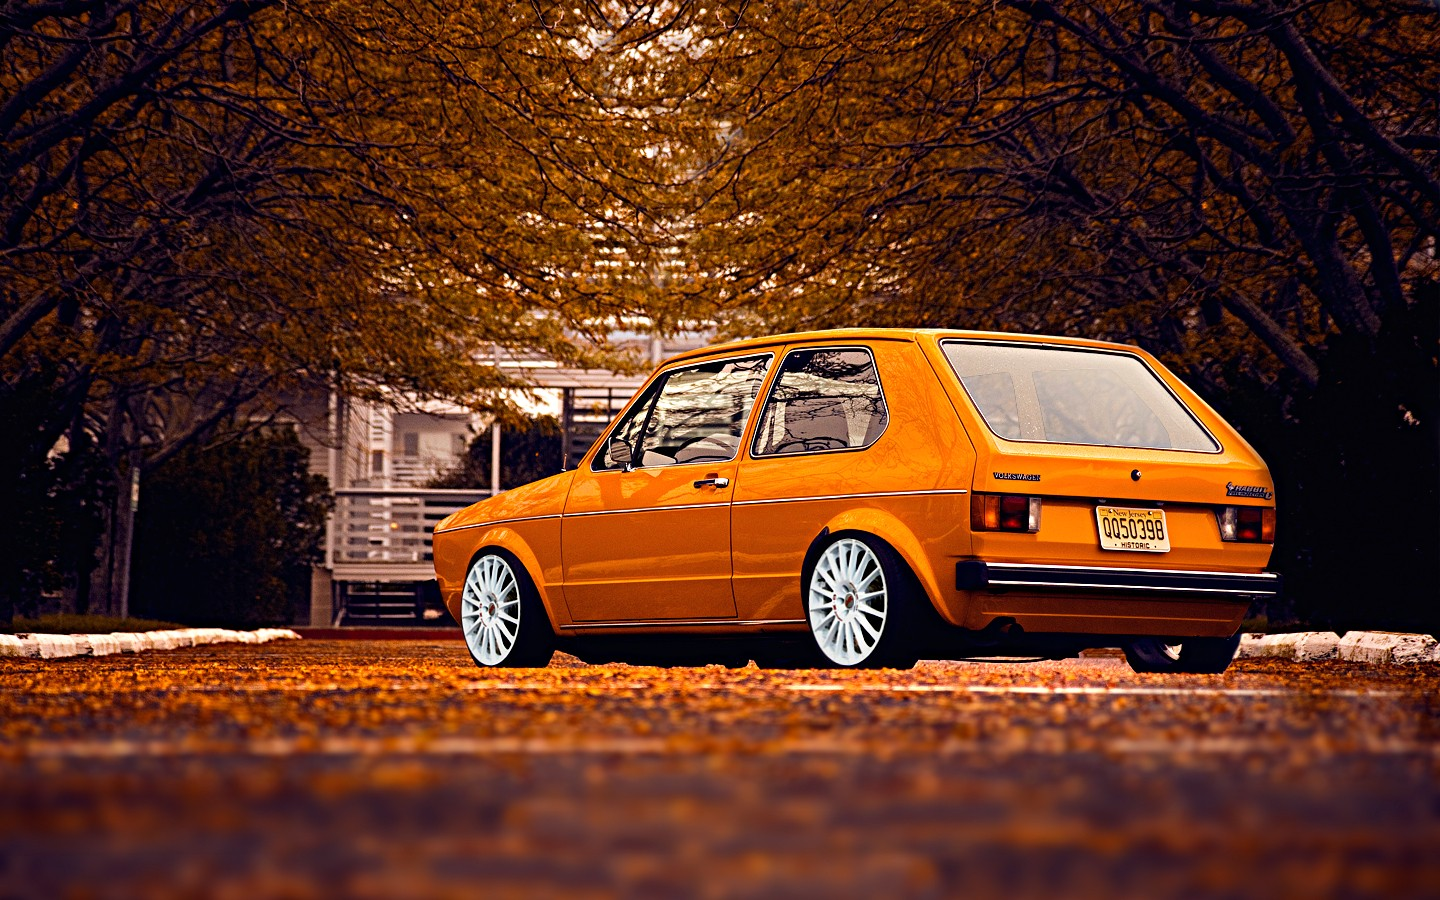 Volkswagen Golf Wallpapers - Full HD wallpaper search